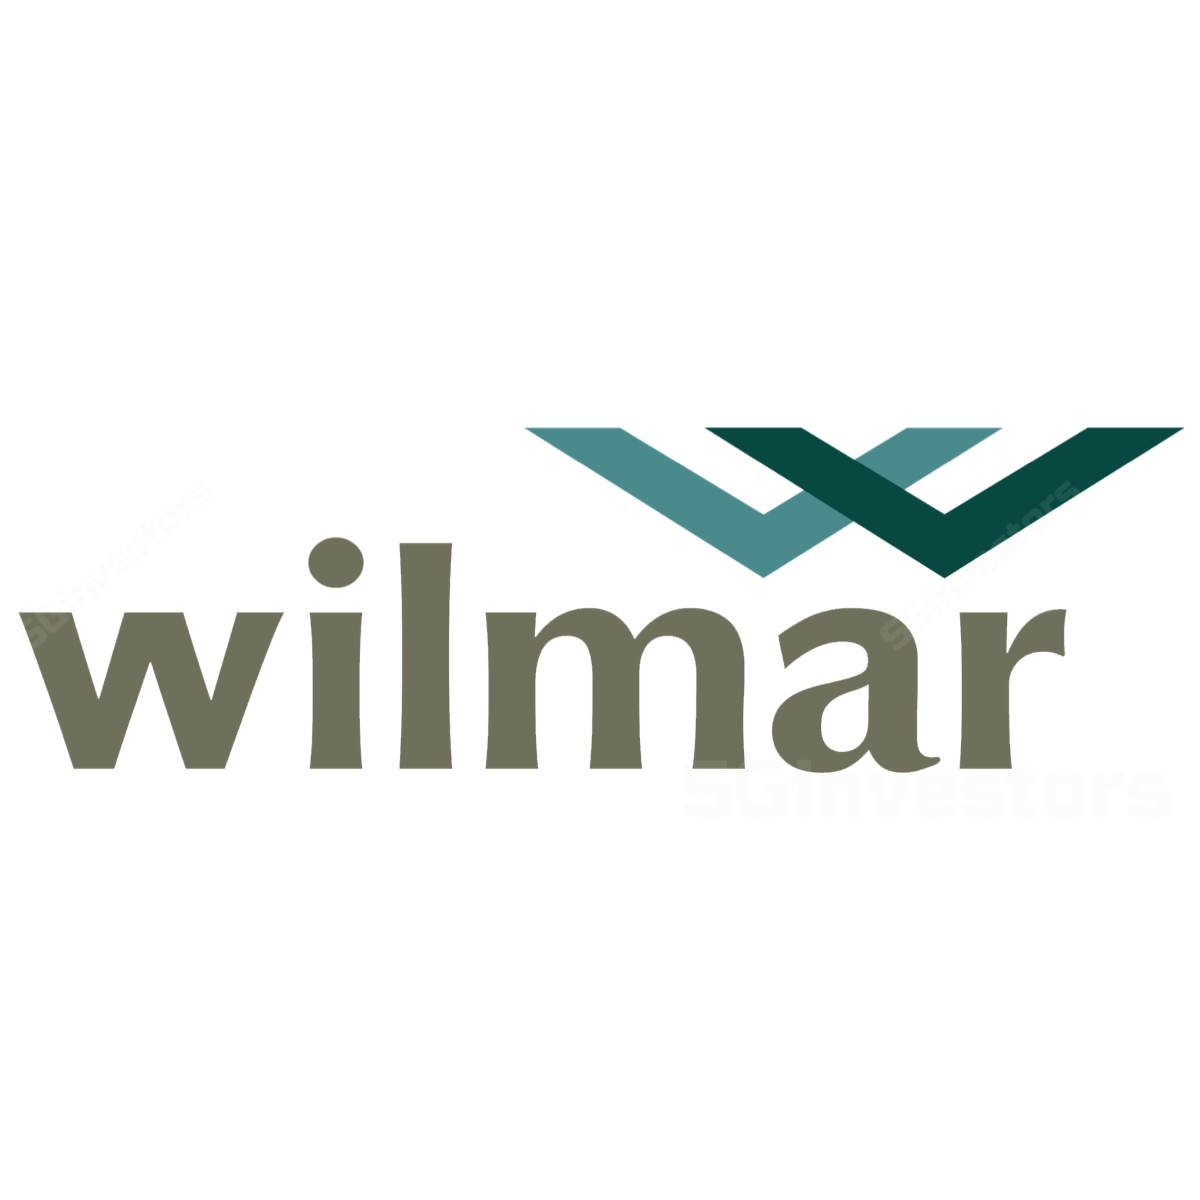 Wilmar International - RHB Securities Research 2018-08-02: Trade War Jitters